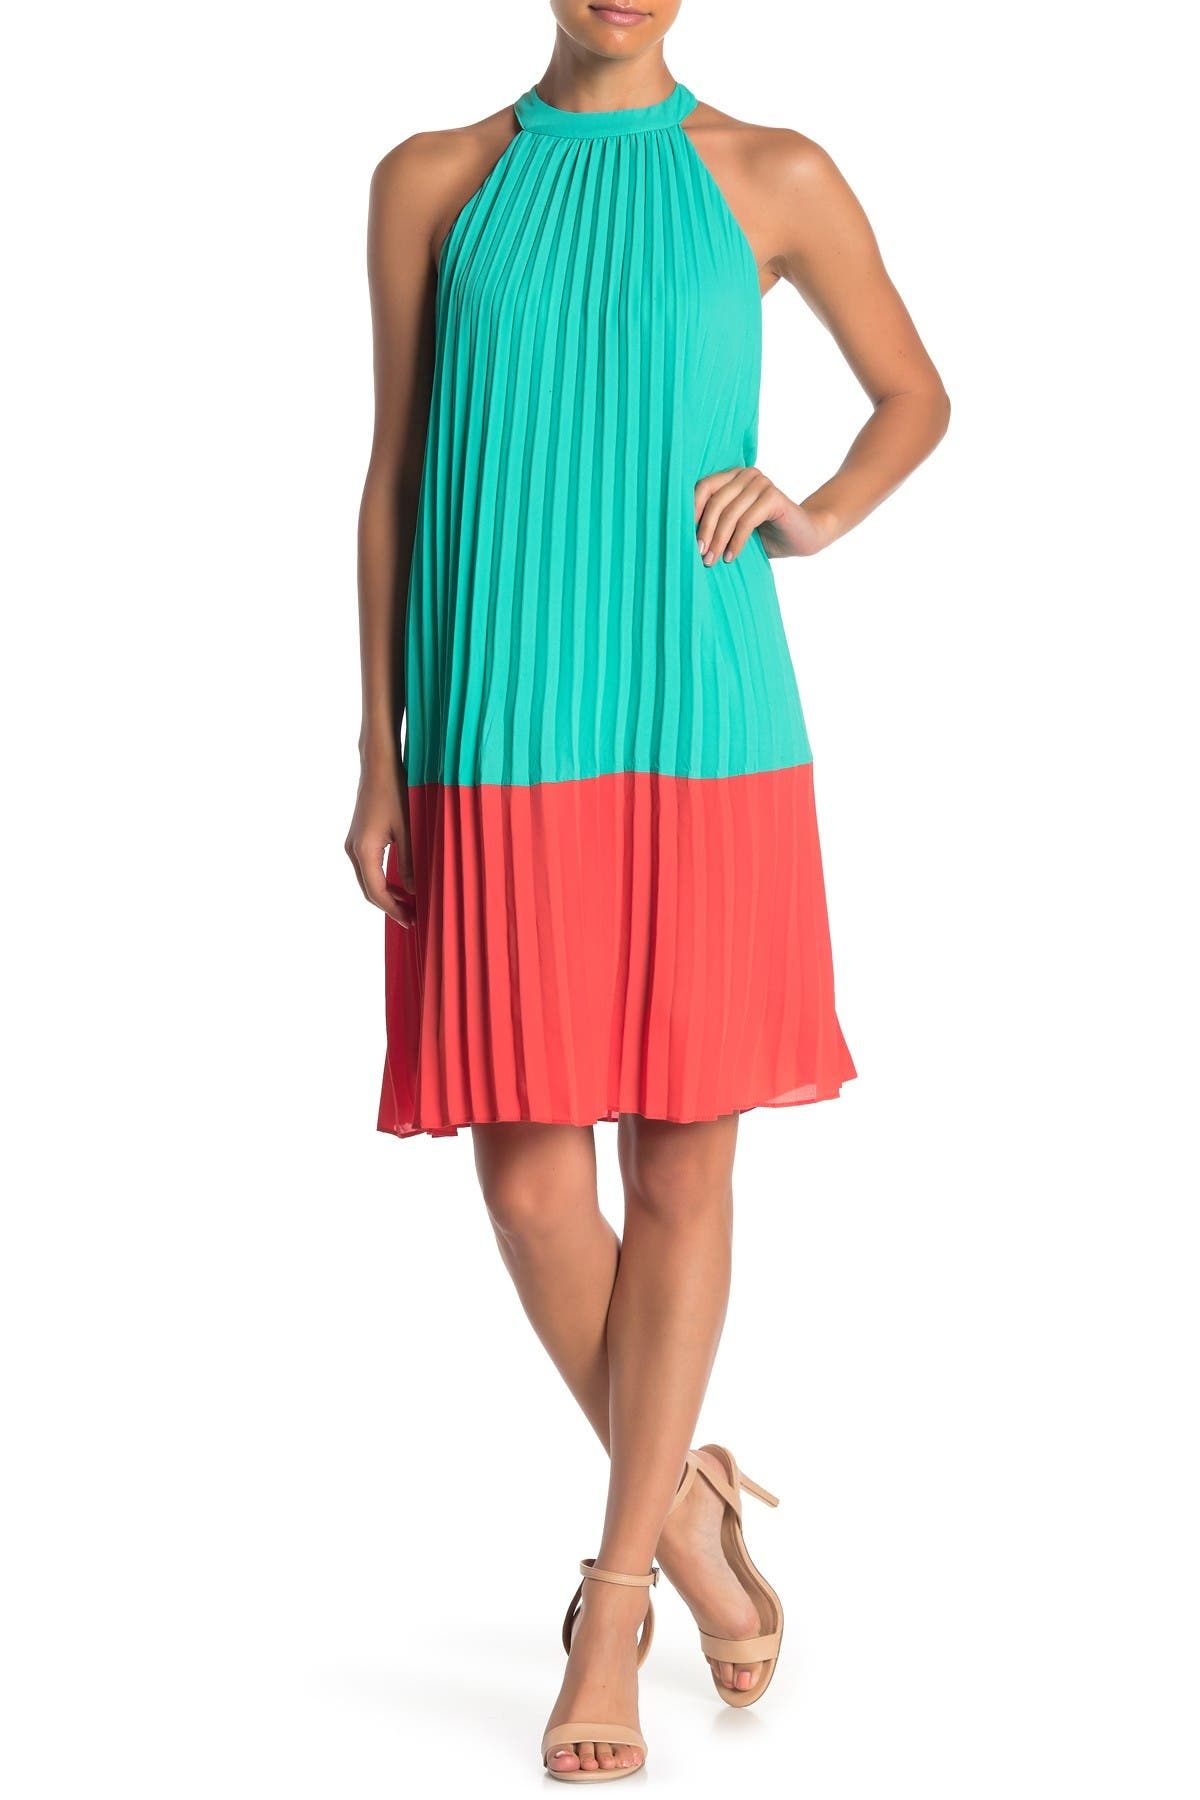 Image of ONE ONE SIX Colorblock Pleated Mini Dress